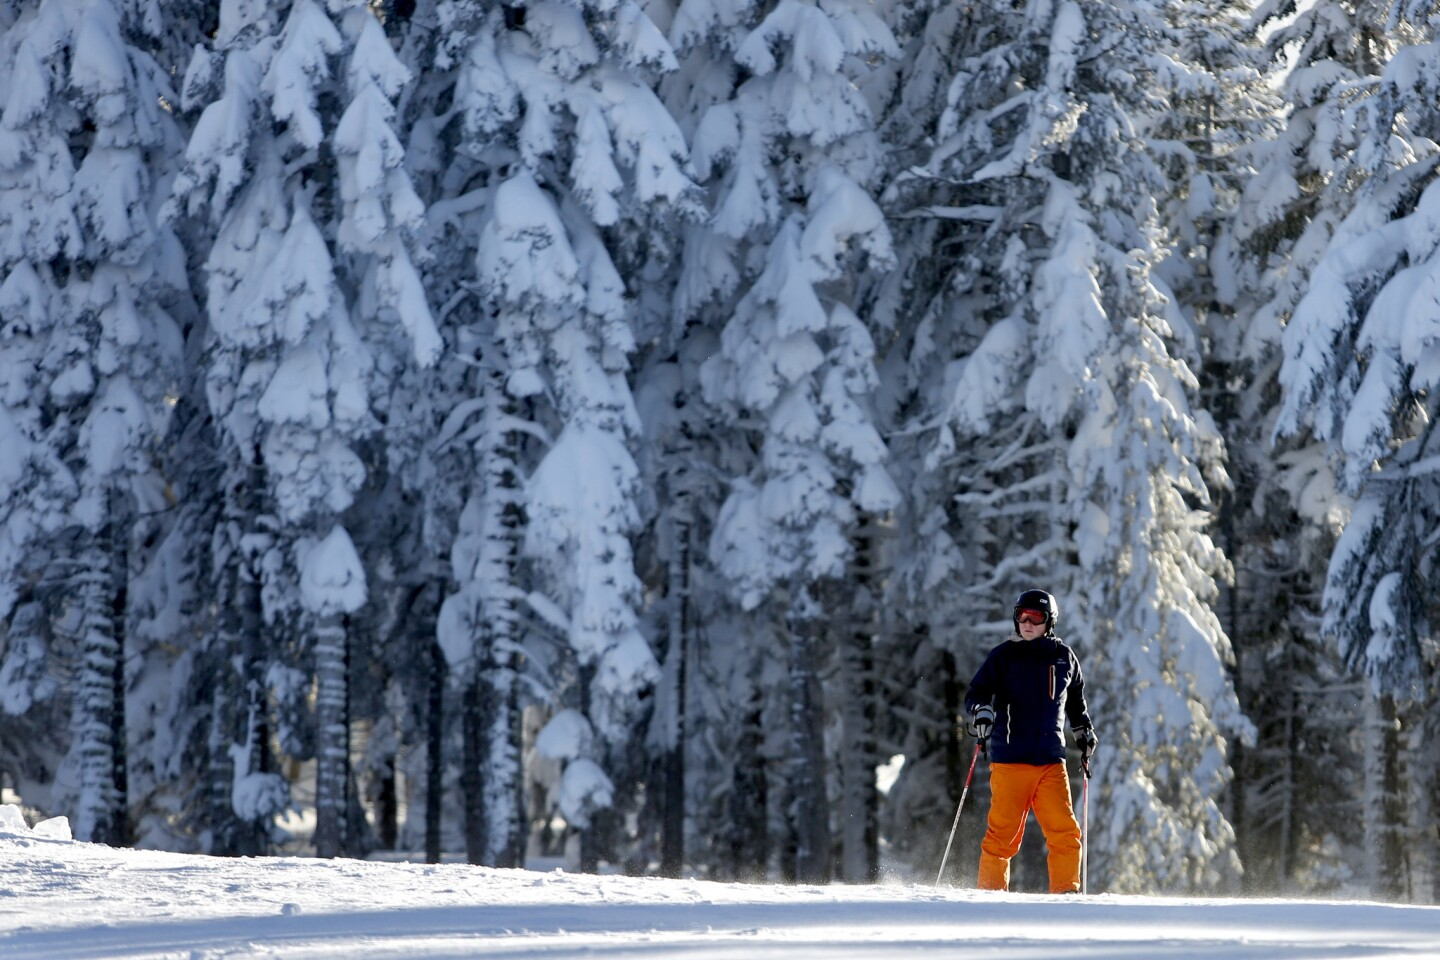 Recent record storms blanket Northstar California Ski Resort with snow, in Truckee, Calif.